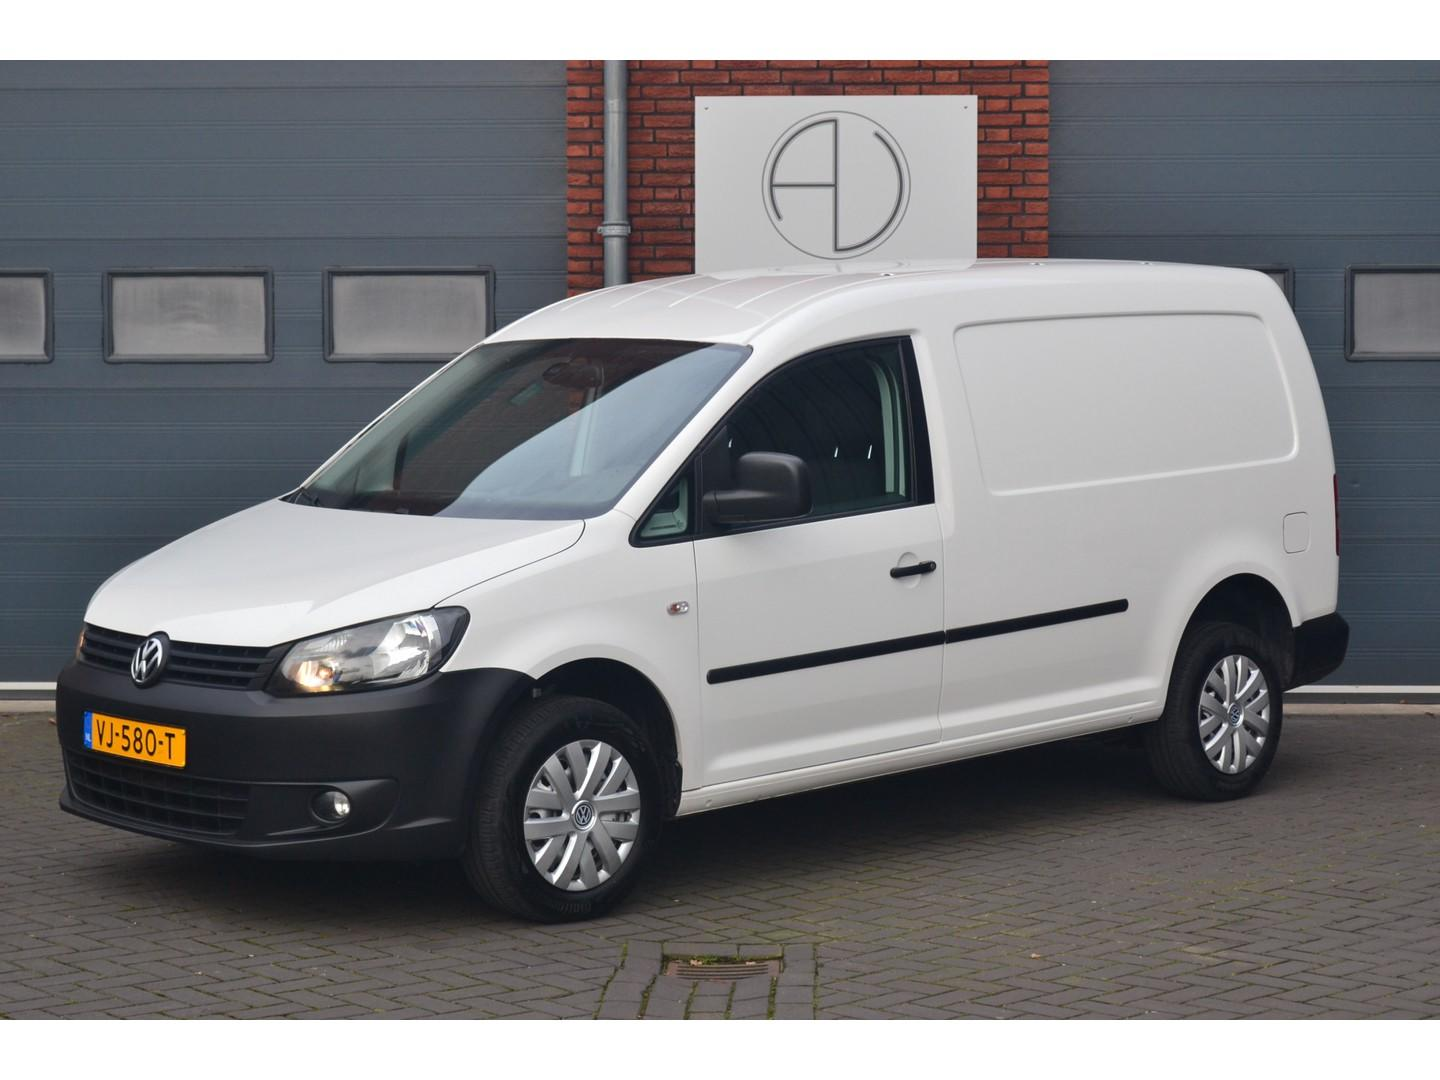 Volkswagen Caddy 1.6 tdi maxi bmt, 102pk, airco, cruise control, trekhaak